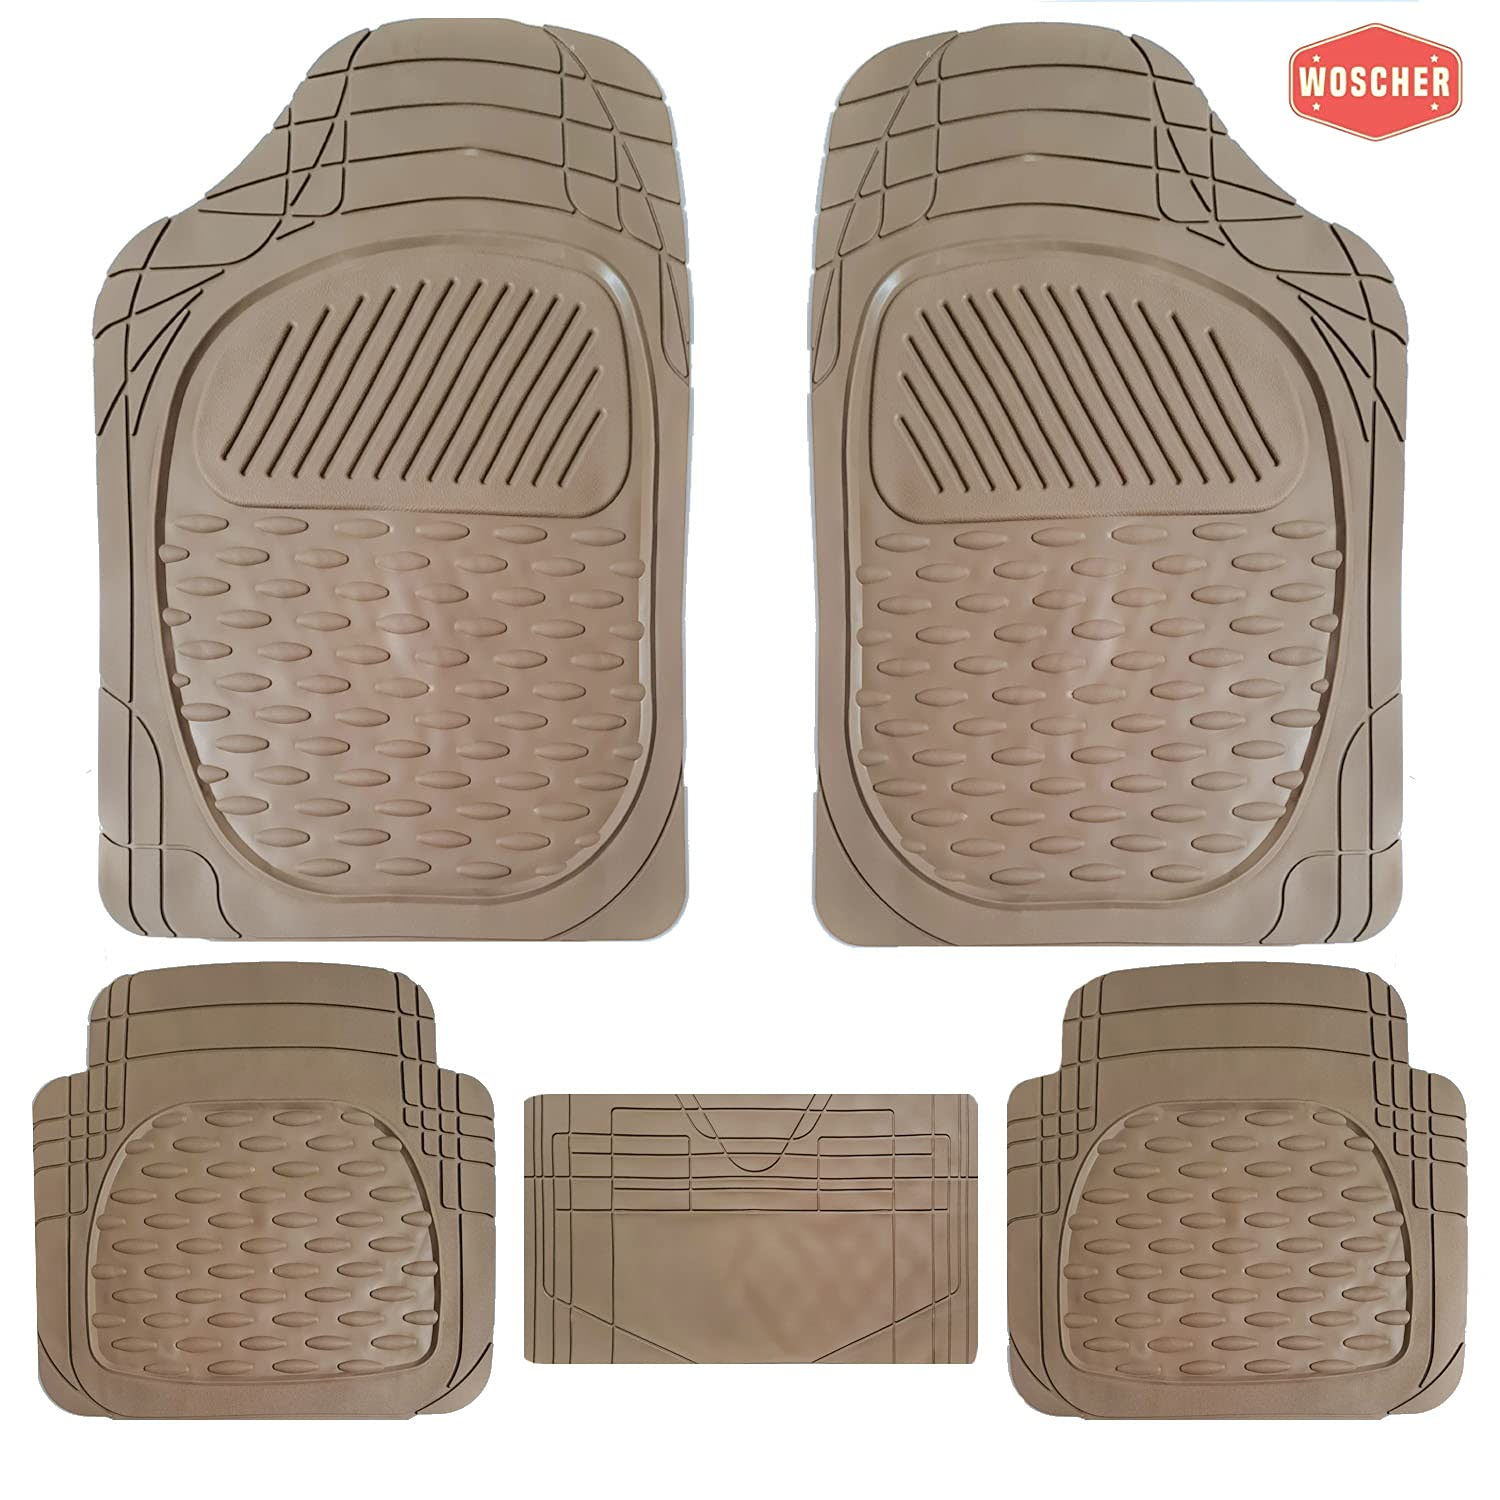 woscher-6255-felxtough-all-season-rubber-floor-car-mat-for-car-suv-universal-self-cut-to-perfectly-fit-beige